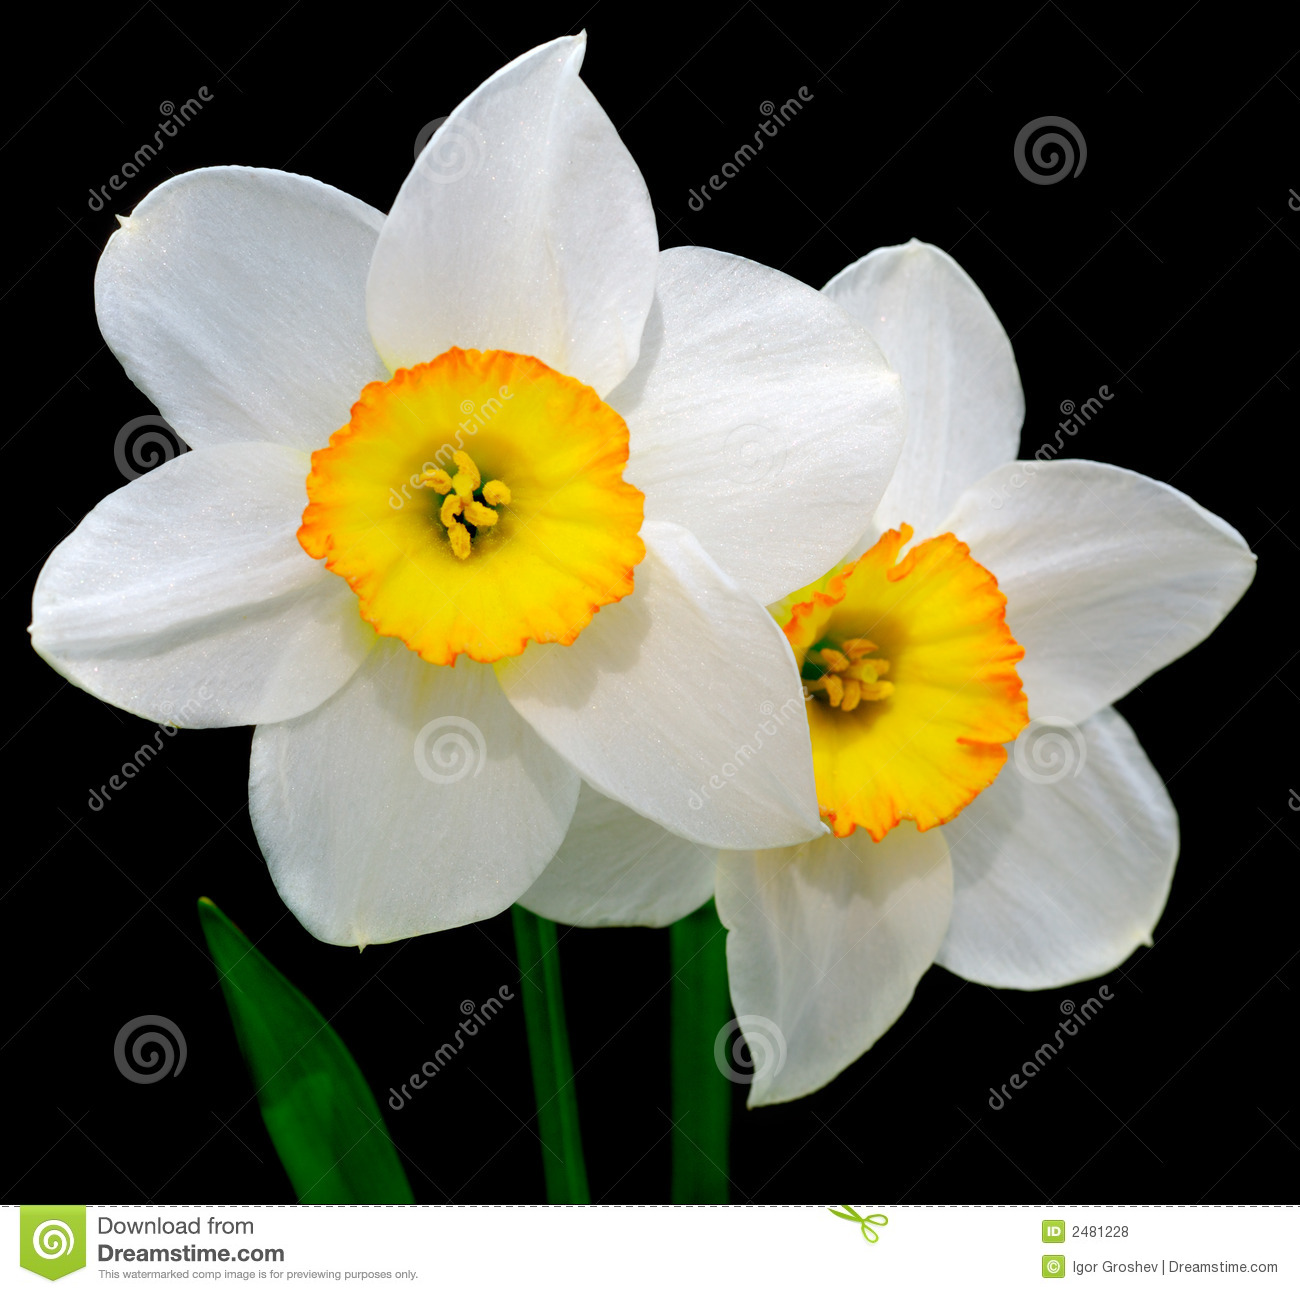 Narcissus Royalty Free Stock Photos - Image: 2481228